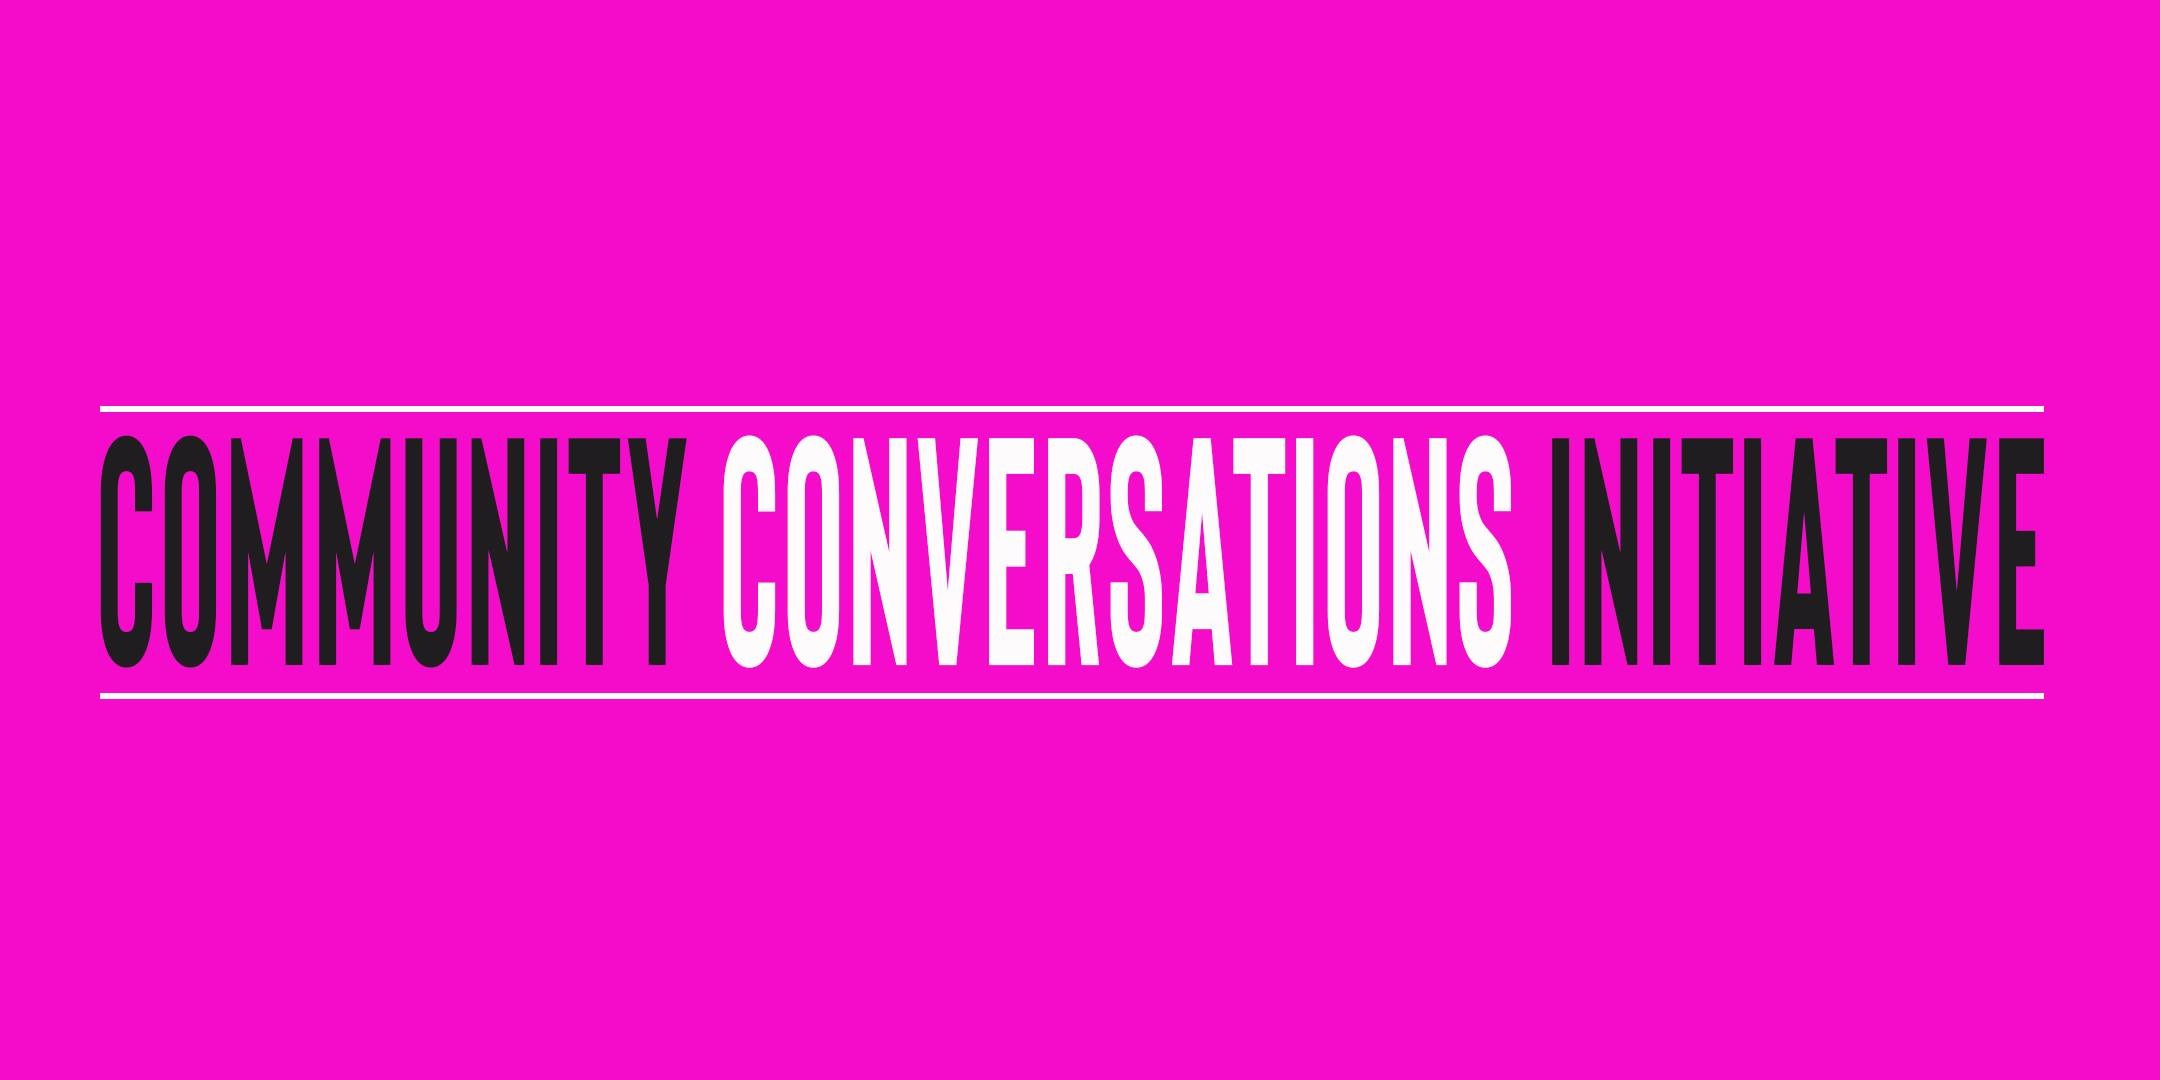 Community Conversations #2 Equity & Diversity in the Arts